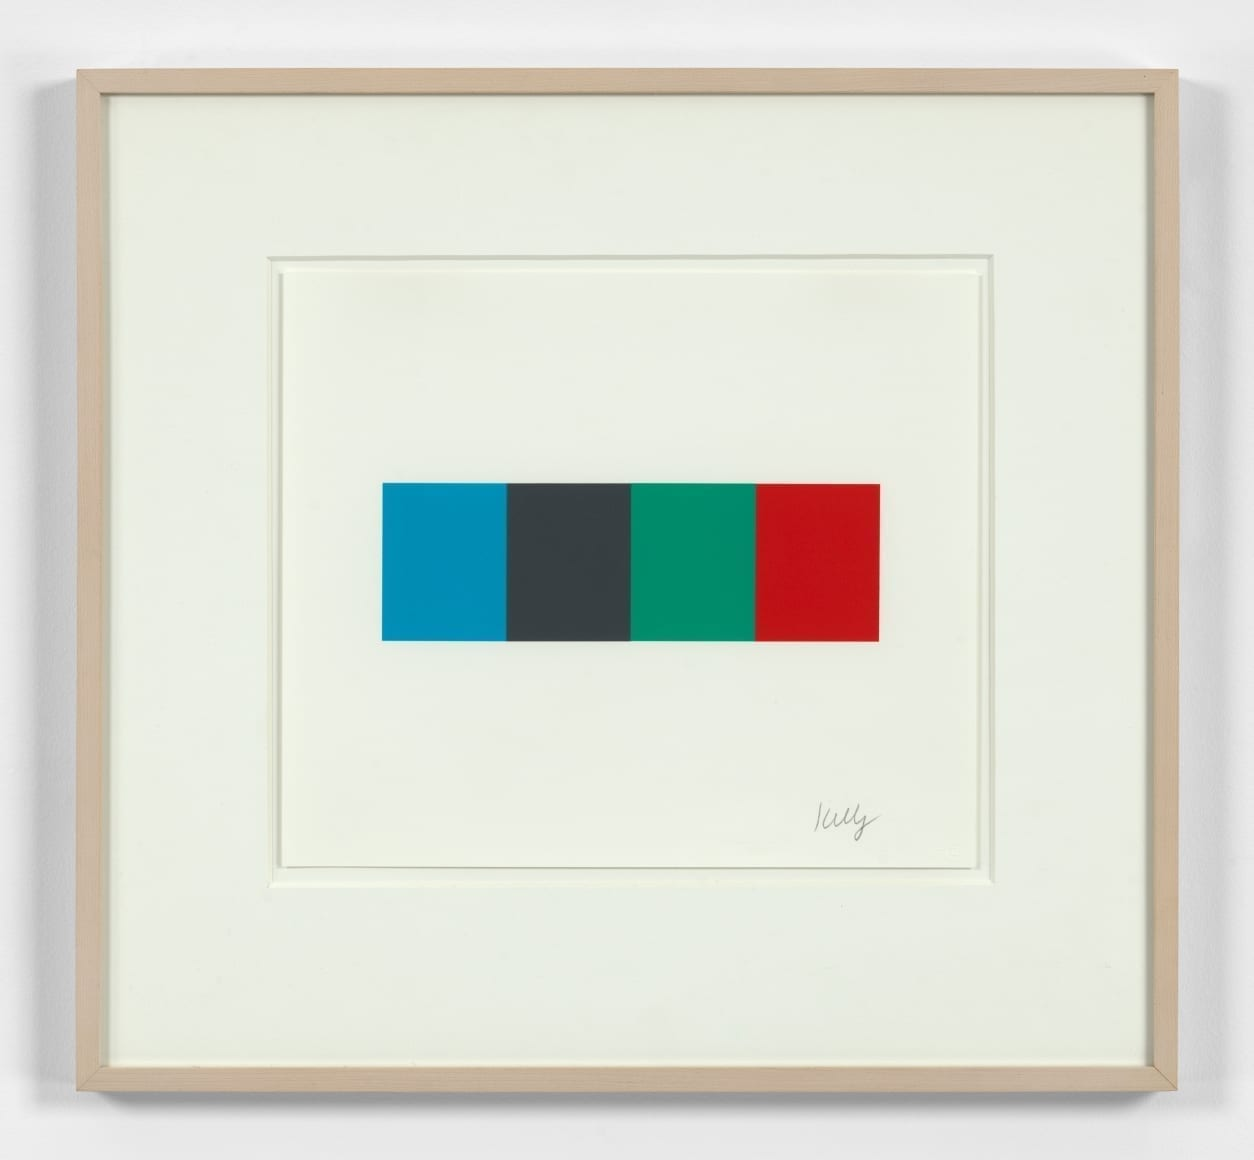 Blue Gray Green Red, 2008